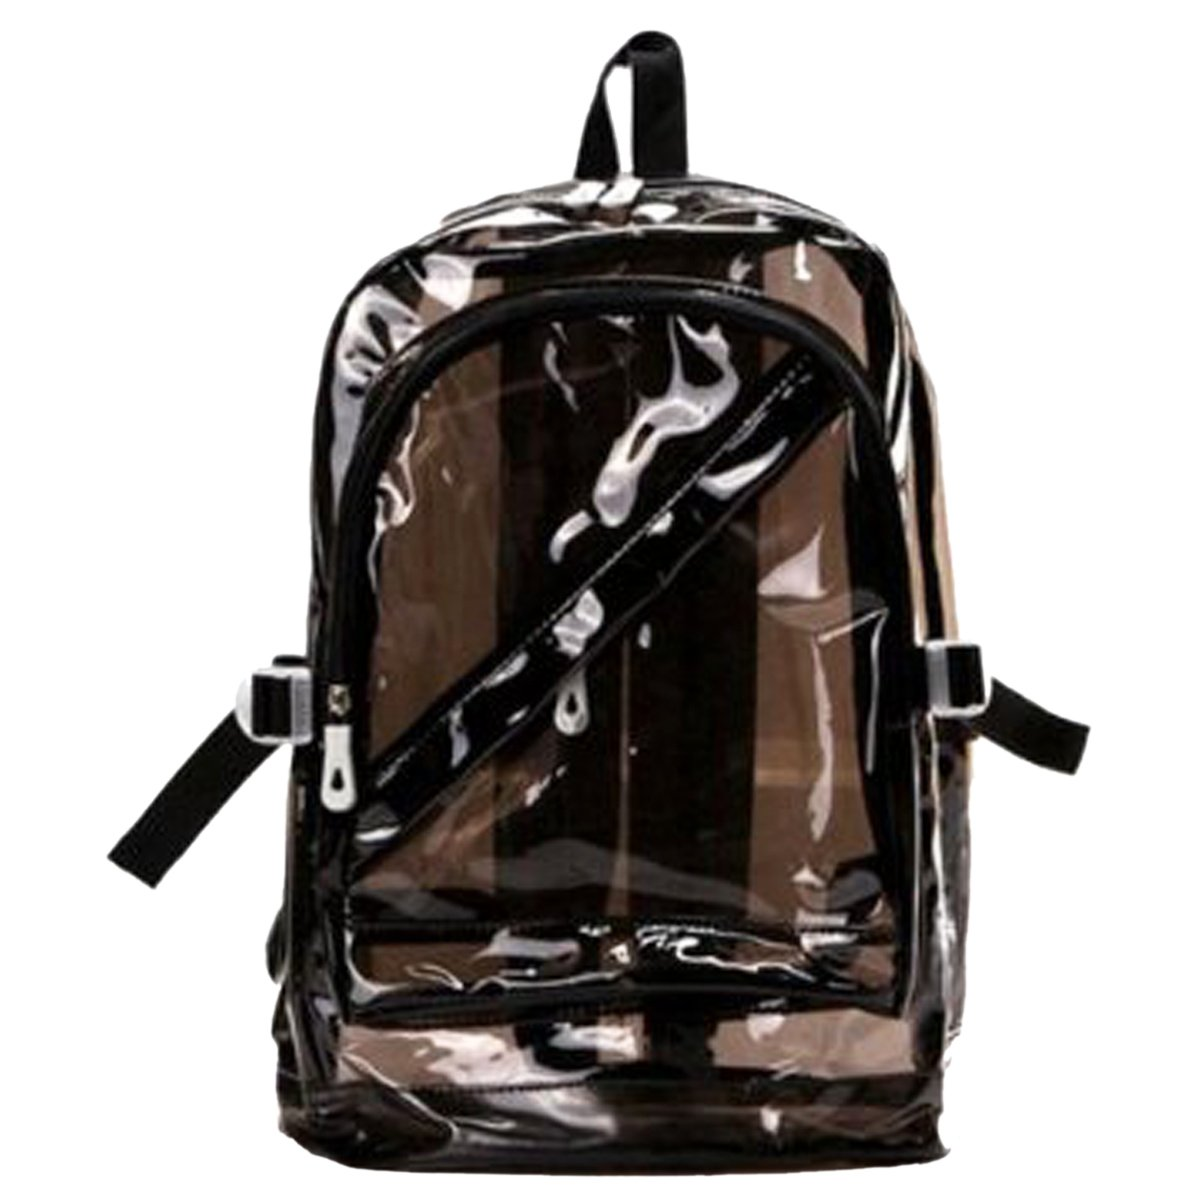 Where To Buy Clear Backpacks Near Me - CEAGESP 71c74c711d58